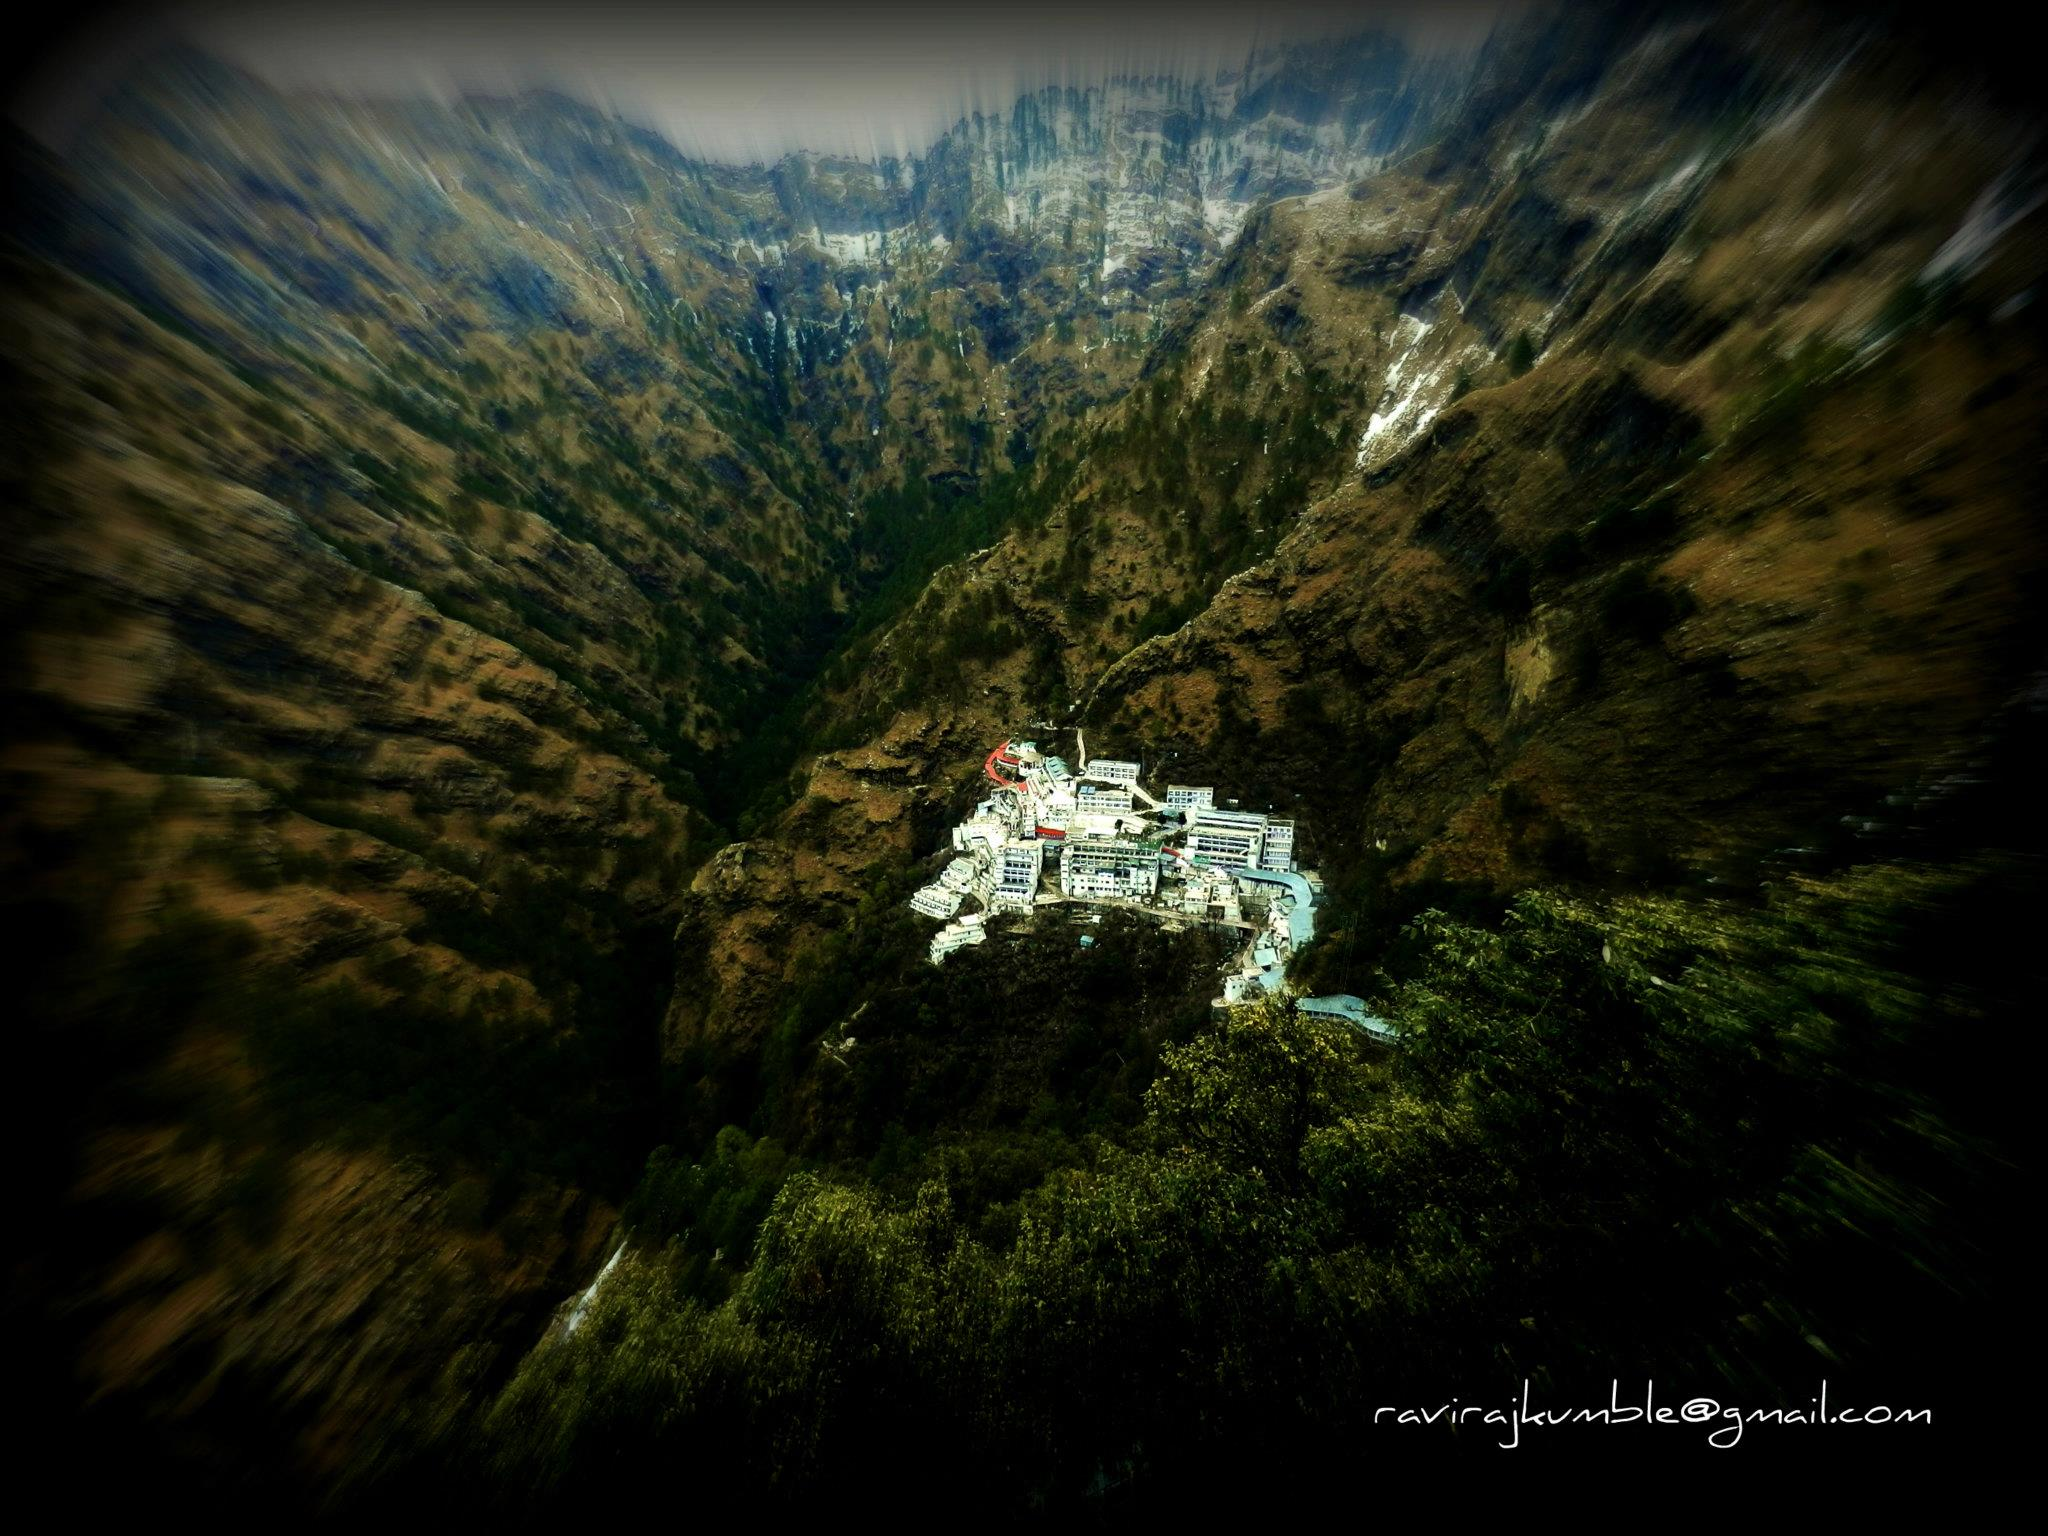 Vaishno Devi(Katra) Yatra In 2020A Sacred Temple Inside The Depths Of A Cave? 1